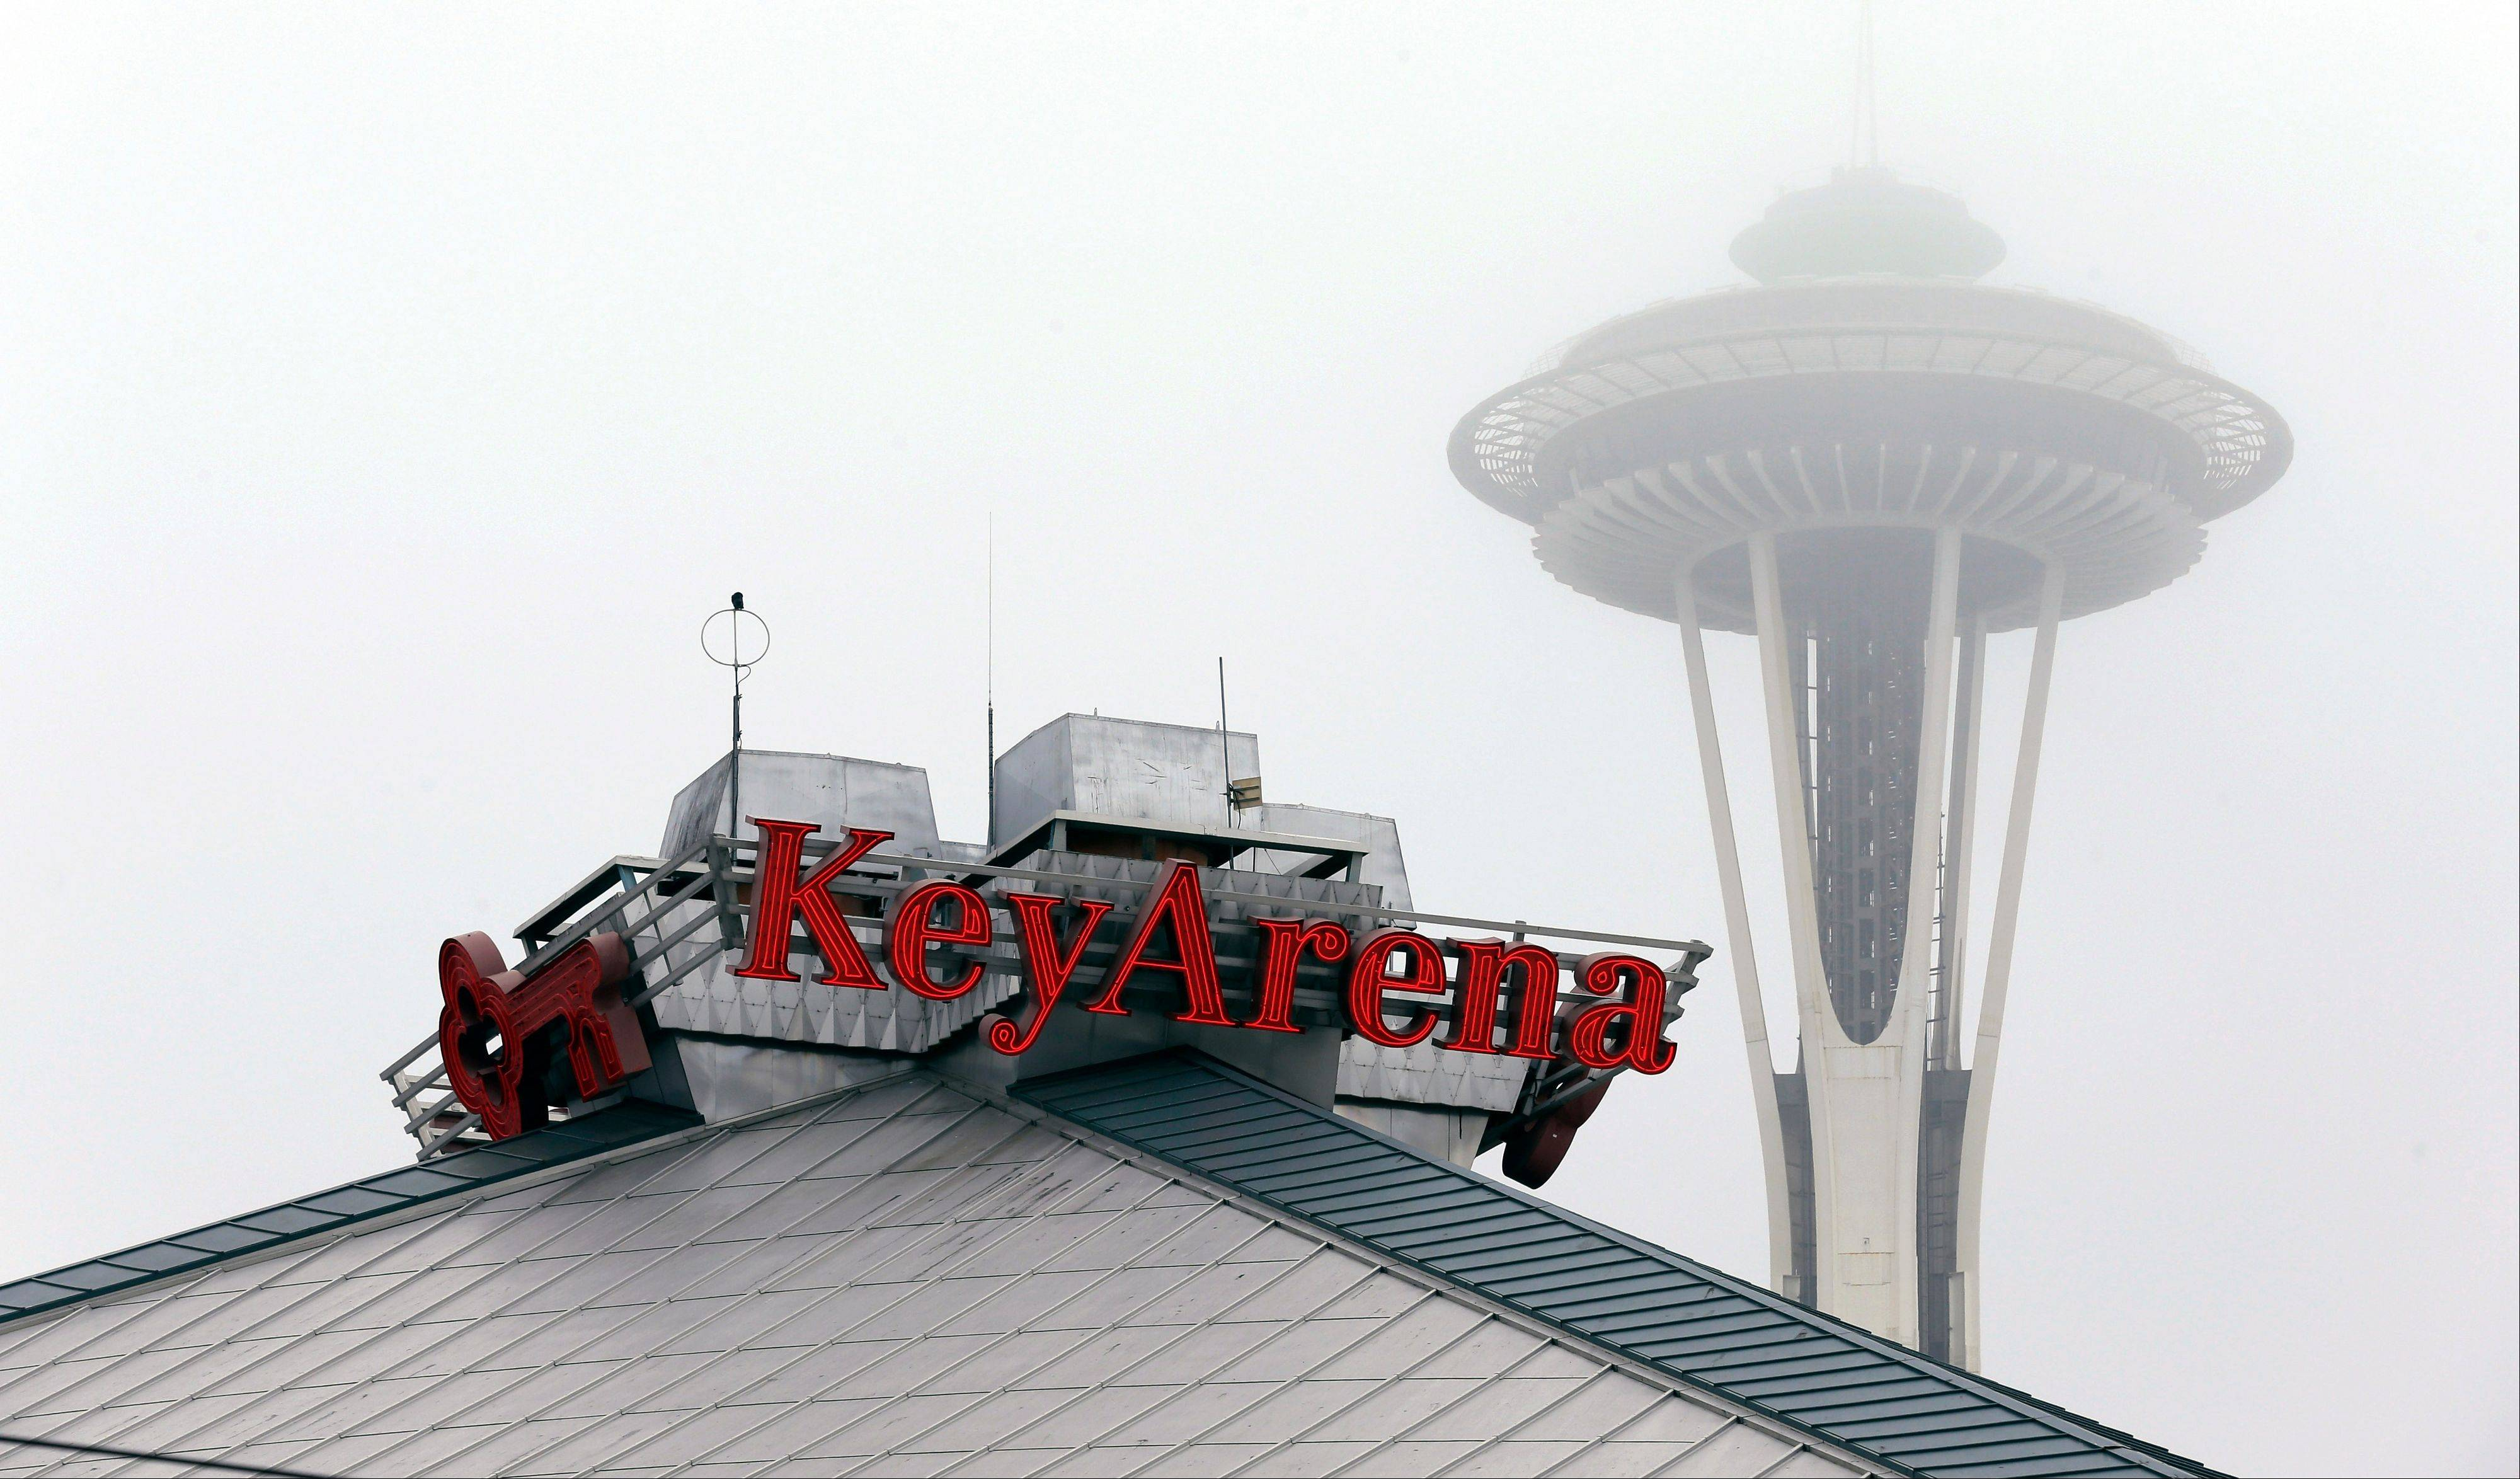 A sign for KeyArena appears near the Space Needle, Monday, Jan. 21, 2013, in Seattle. KeyArena would host NBA basketball games for two seasons if a team returns to Seattle as was reported likely on Monday, while a new permanent facility is built south of downtown Seattle. The Maloof family has agreed to sell the Sacramento Kings to a Seattle group led by investor Chris Hansen, the league confirmed in a statement Monday morning.